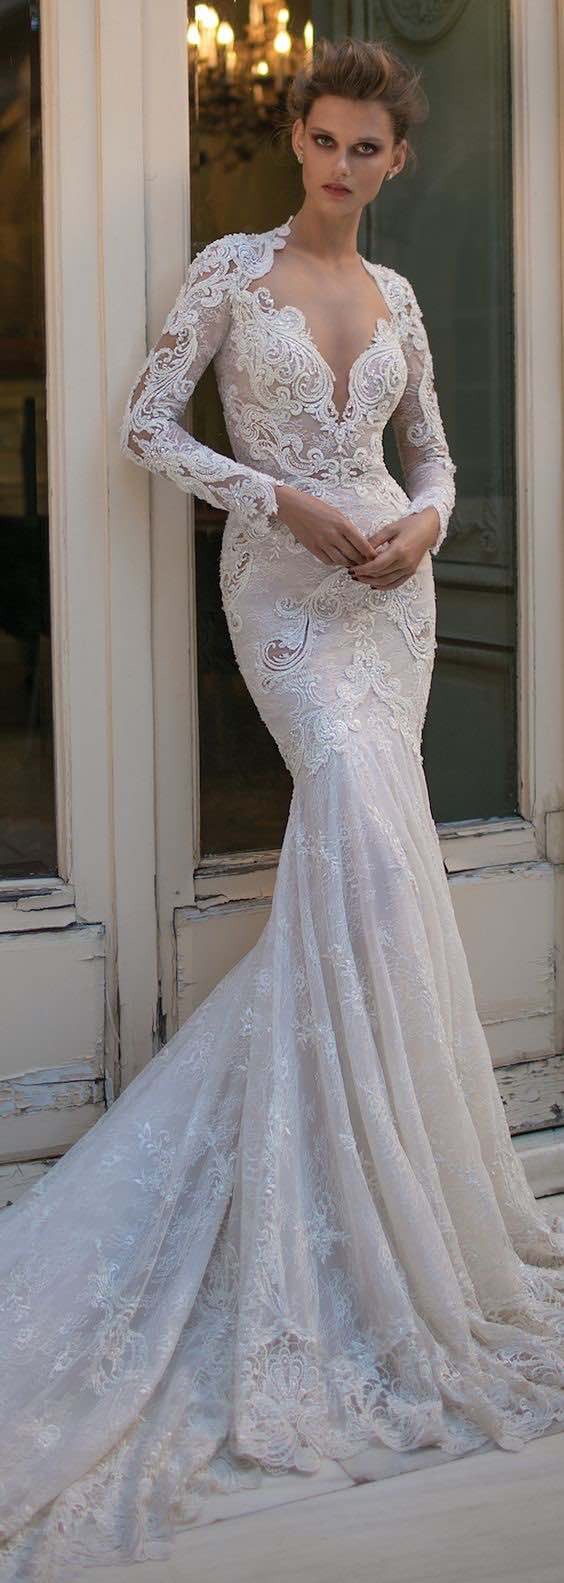 We adore this Berta Bridal Spring collection. Lace, embroidery and sheer fabrics.